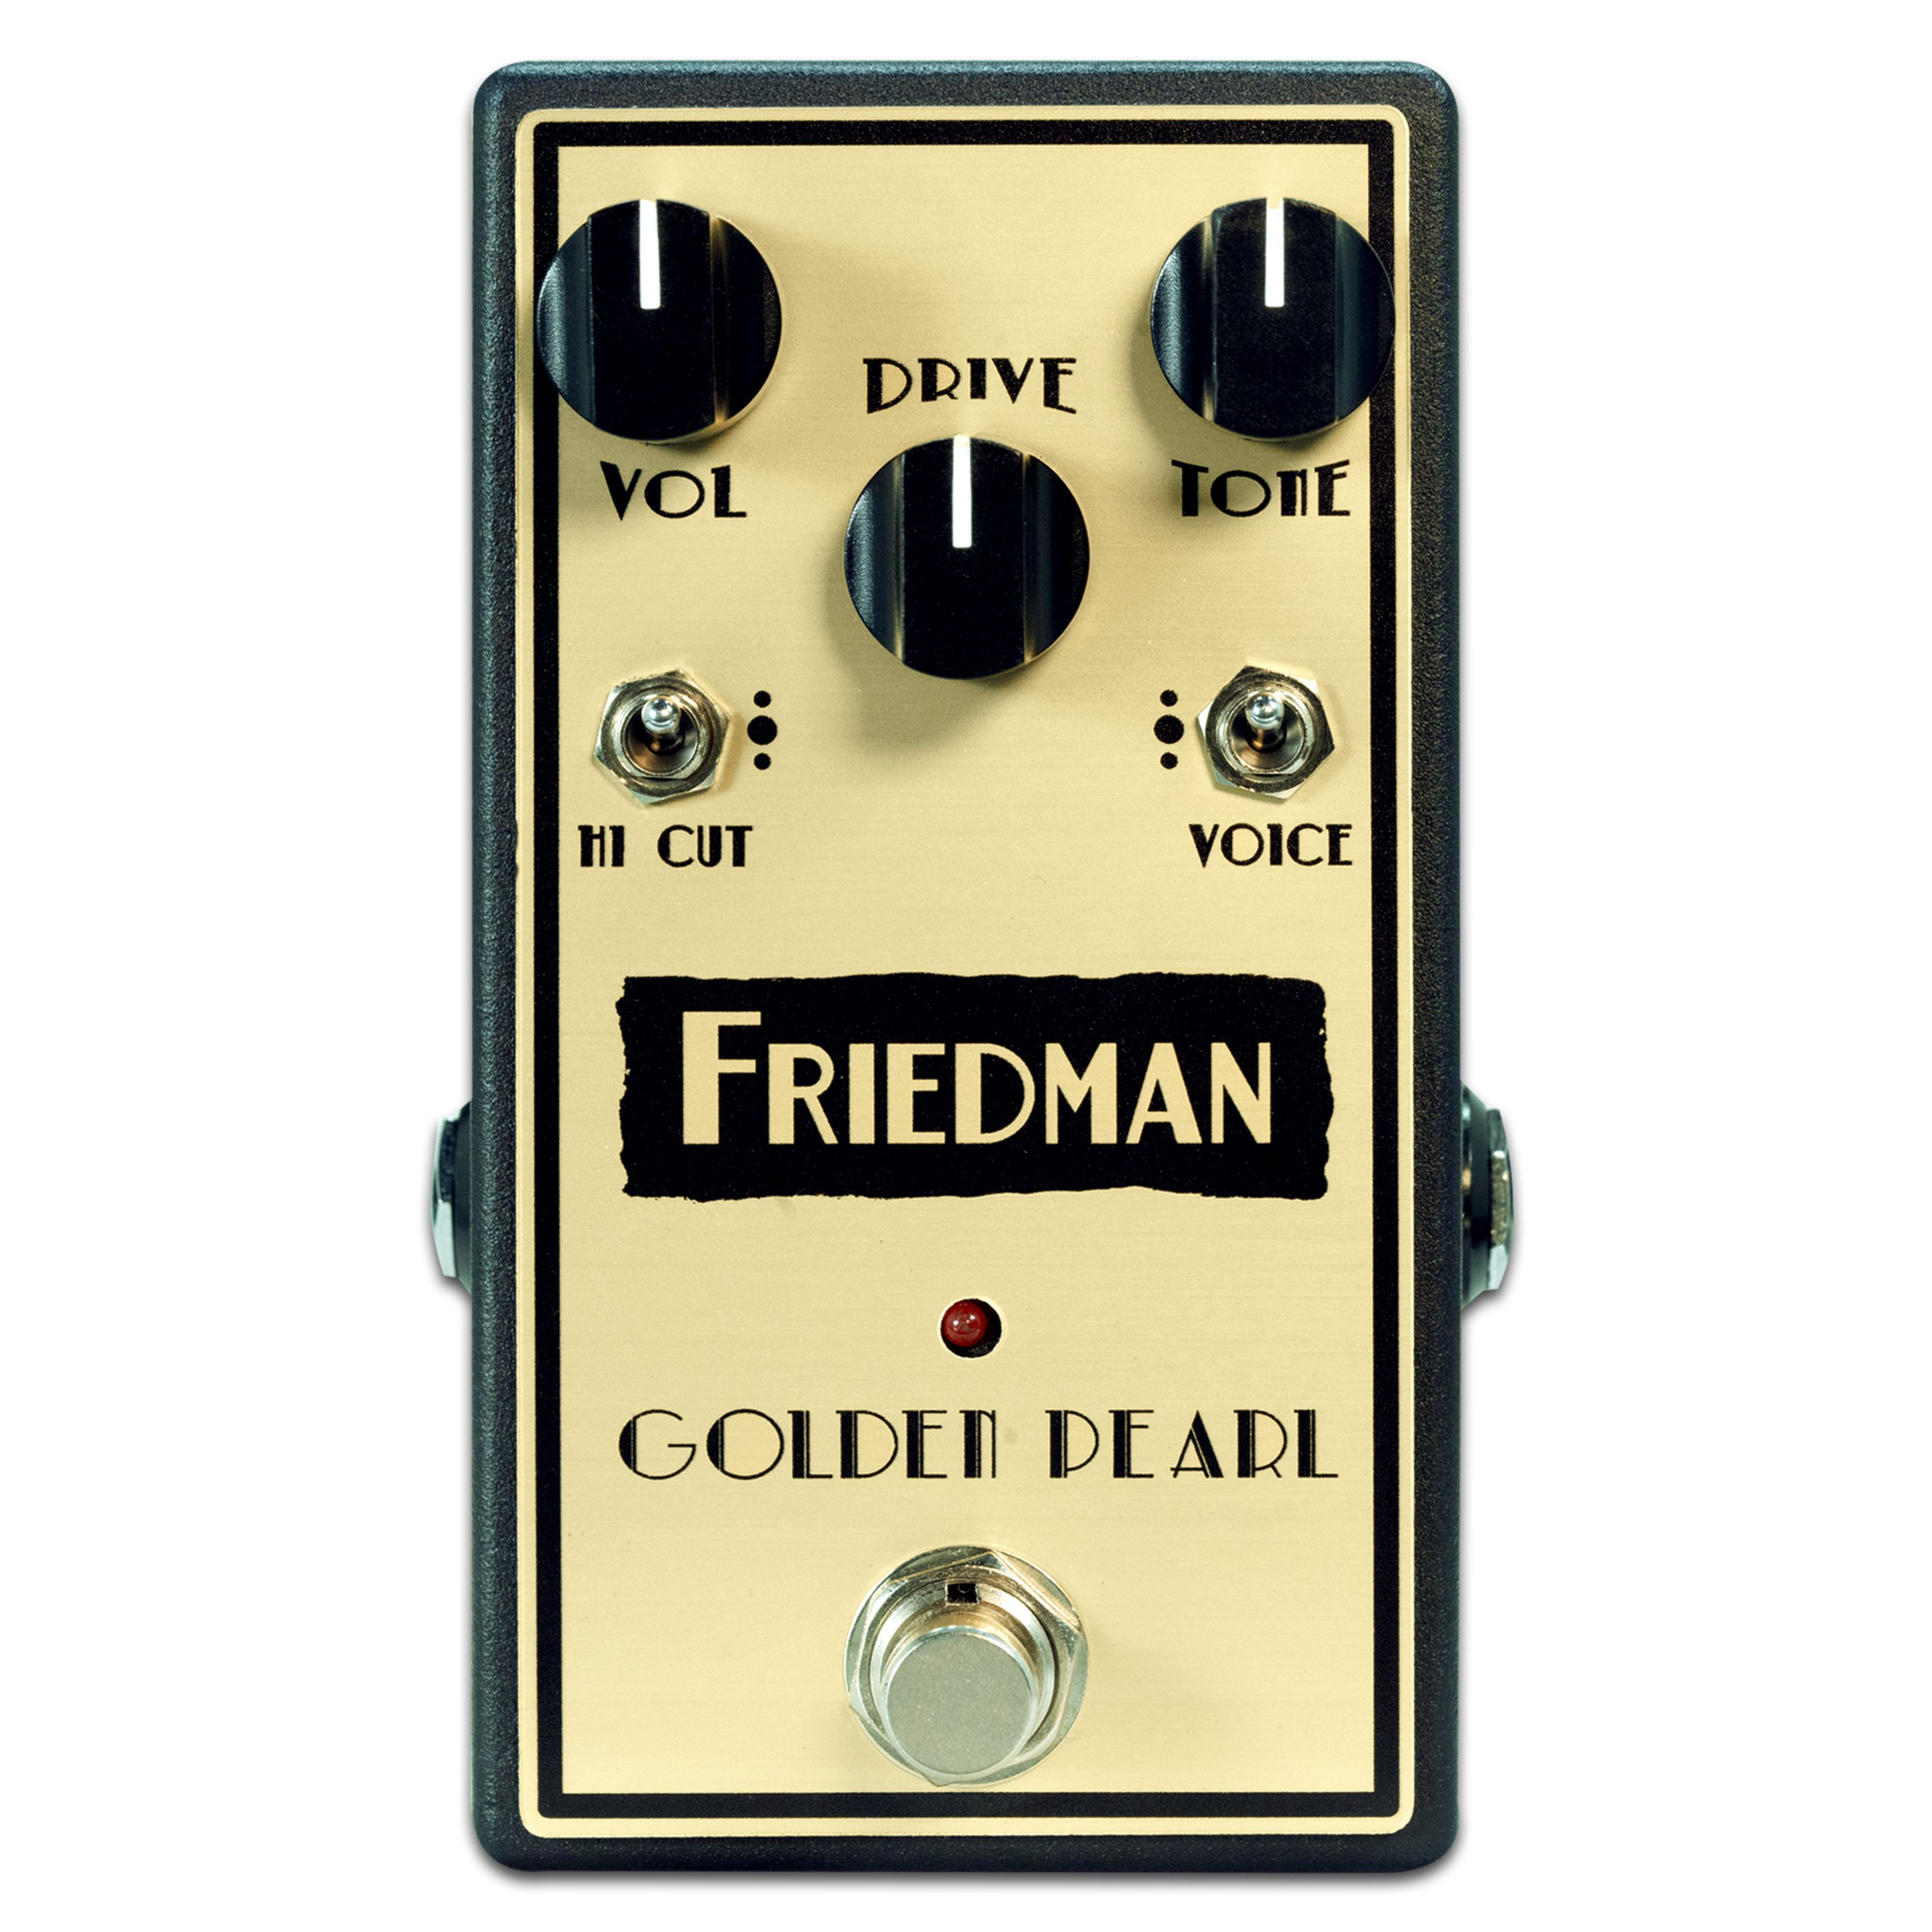 Friedman - Golden Pearl